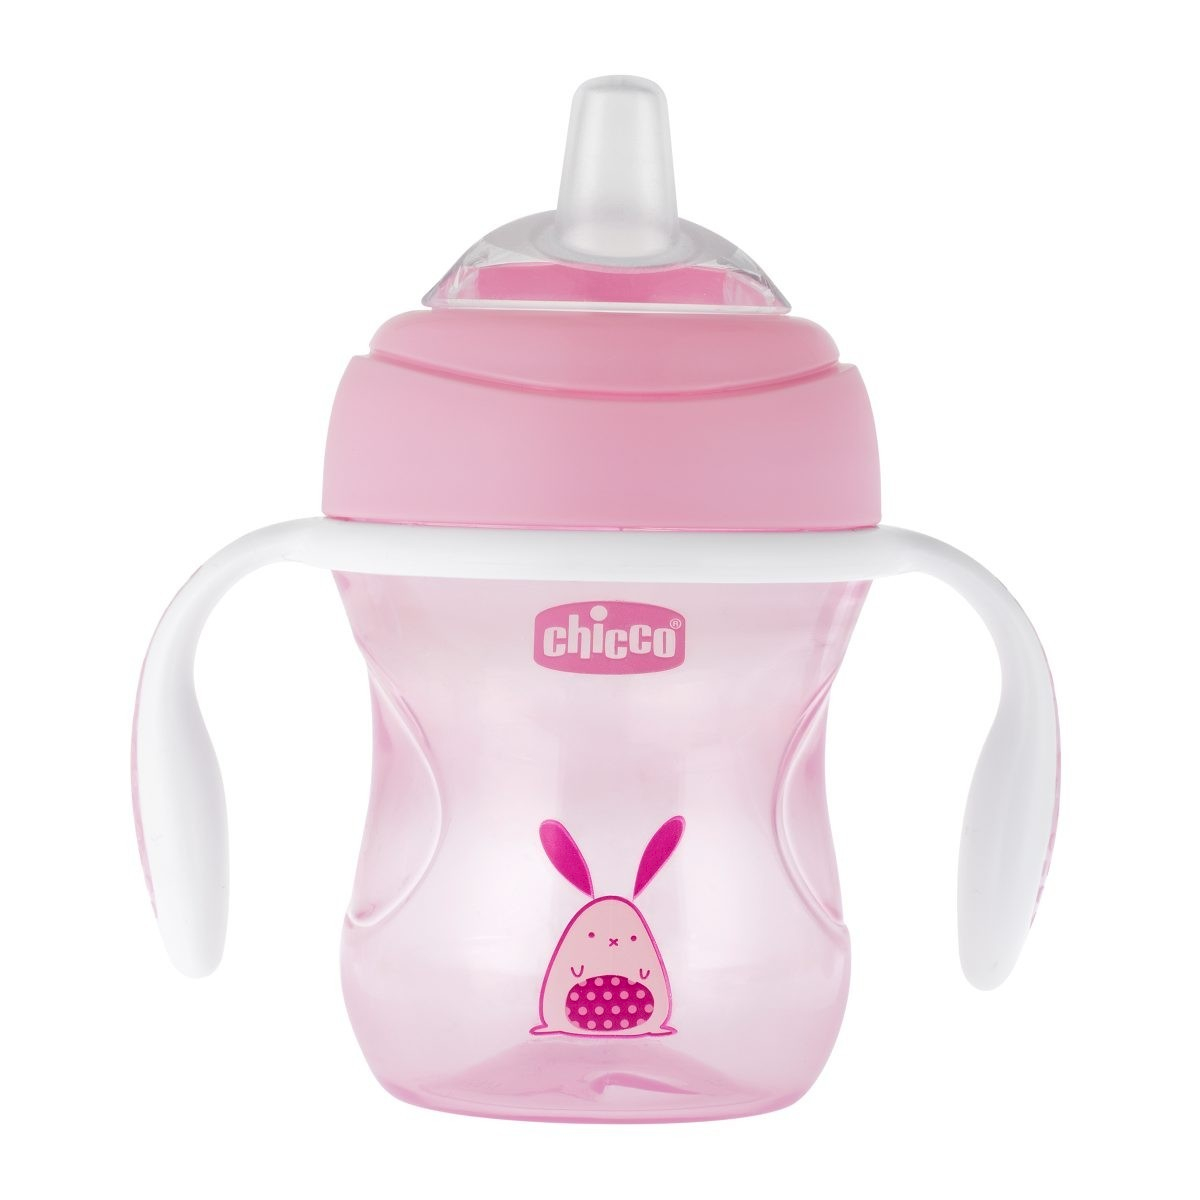 Chicco Transition Schnabeltasse 4M+ Rosa